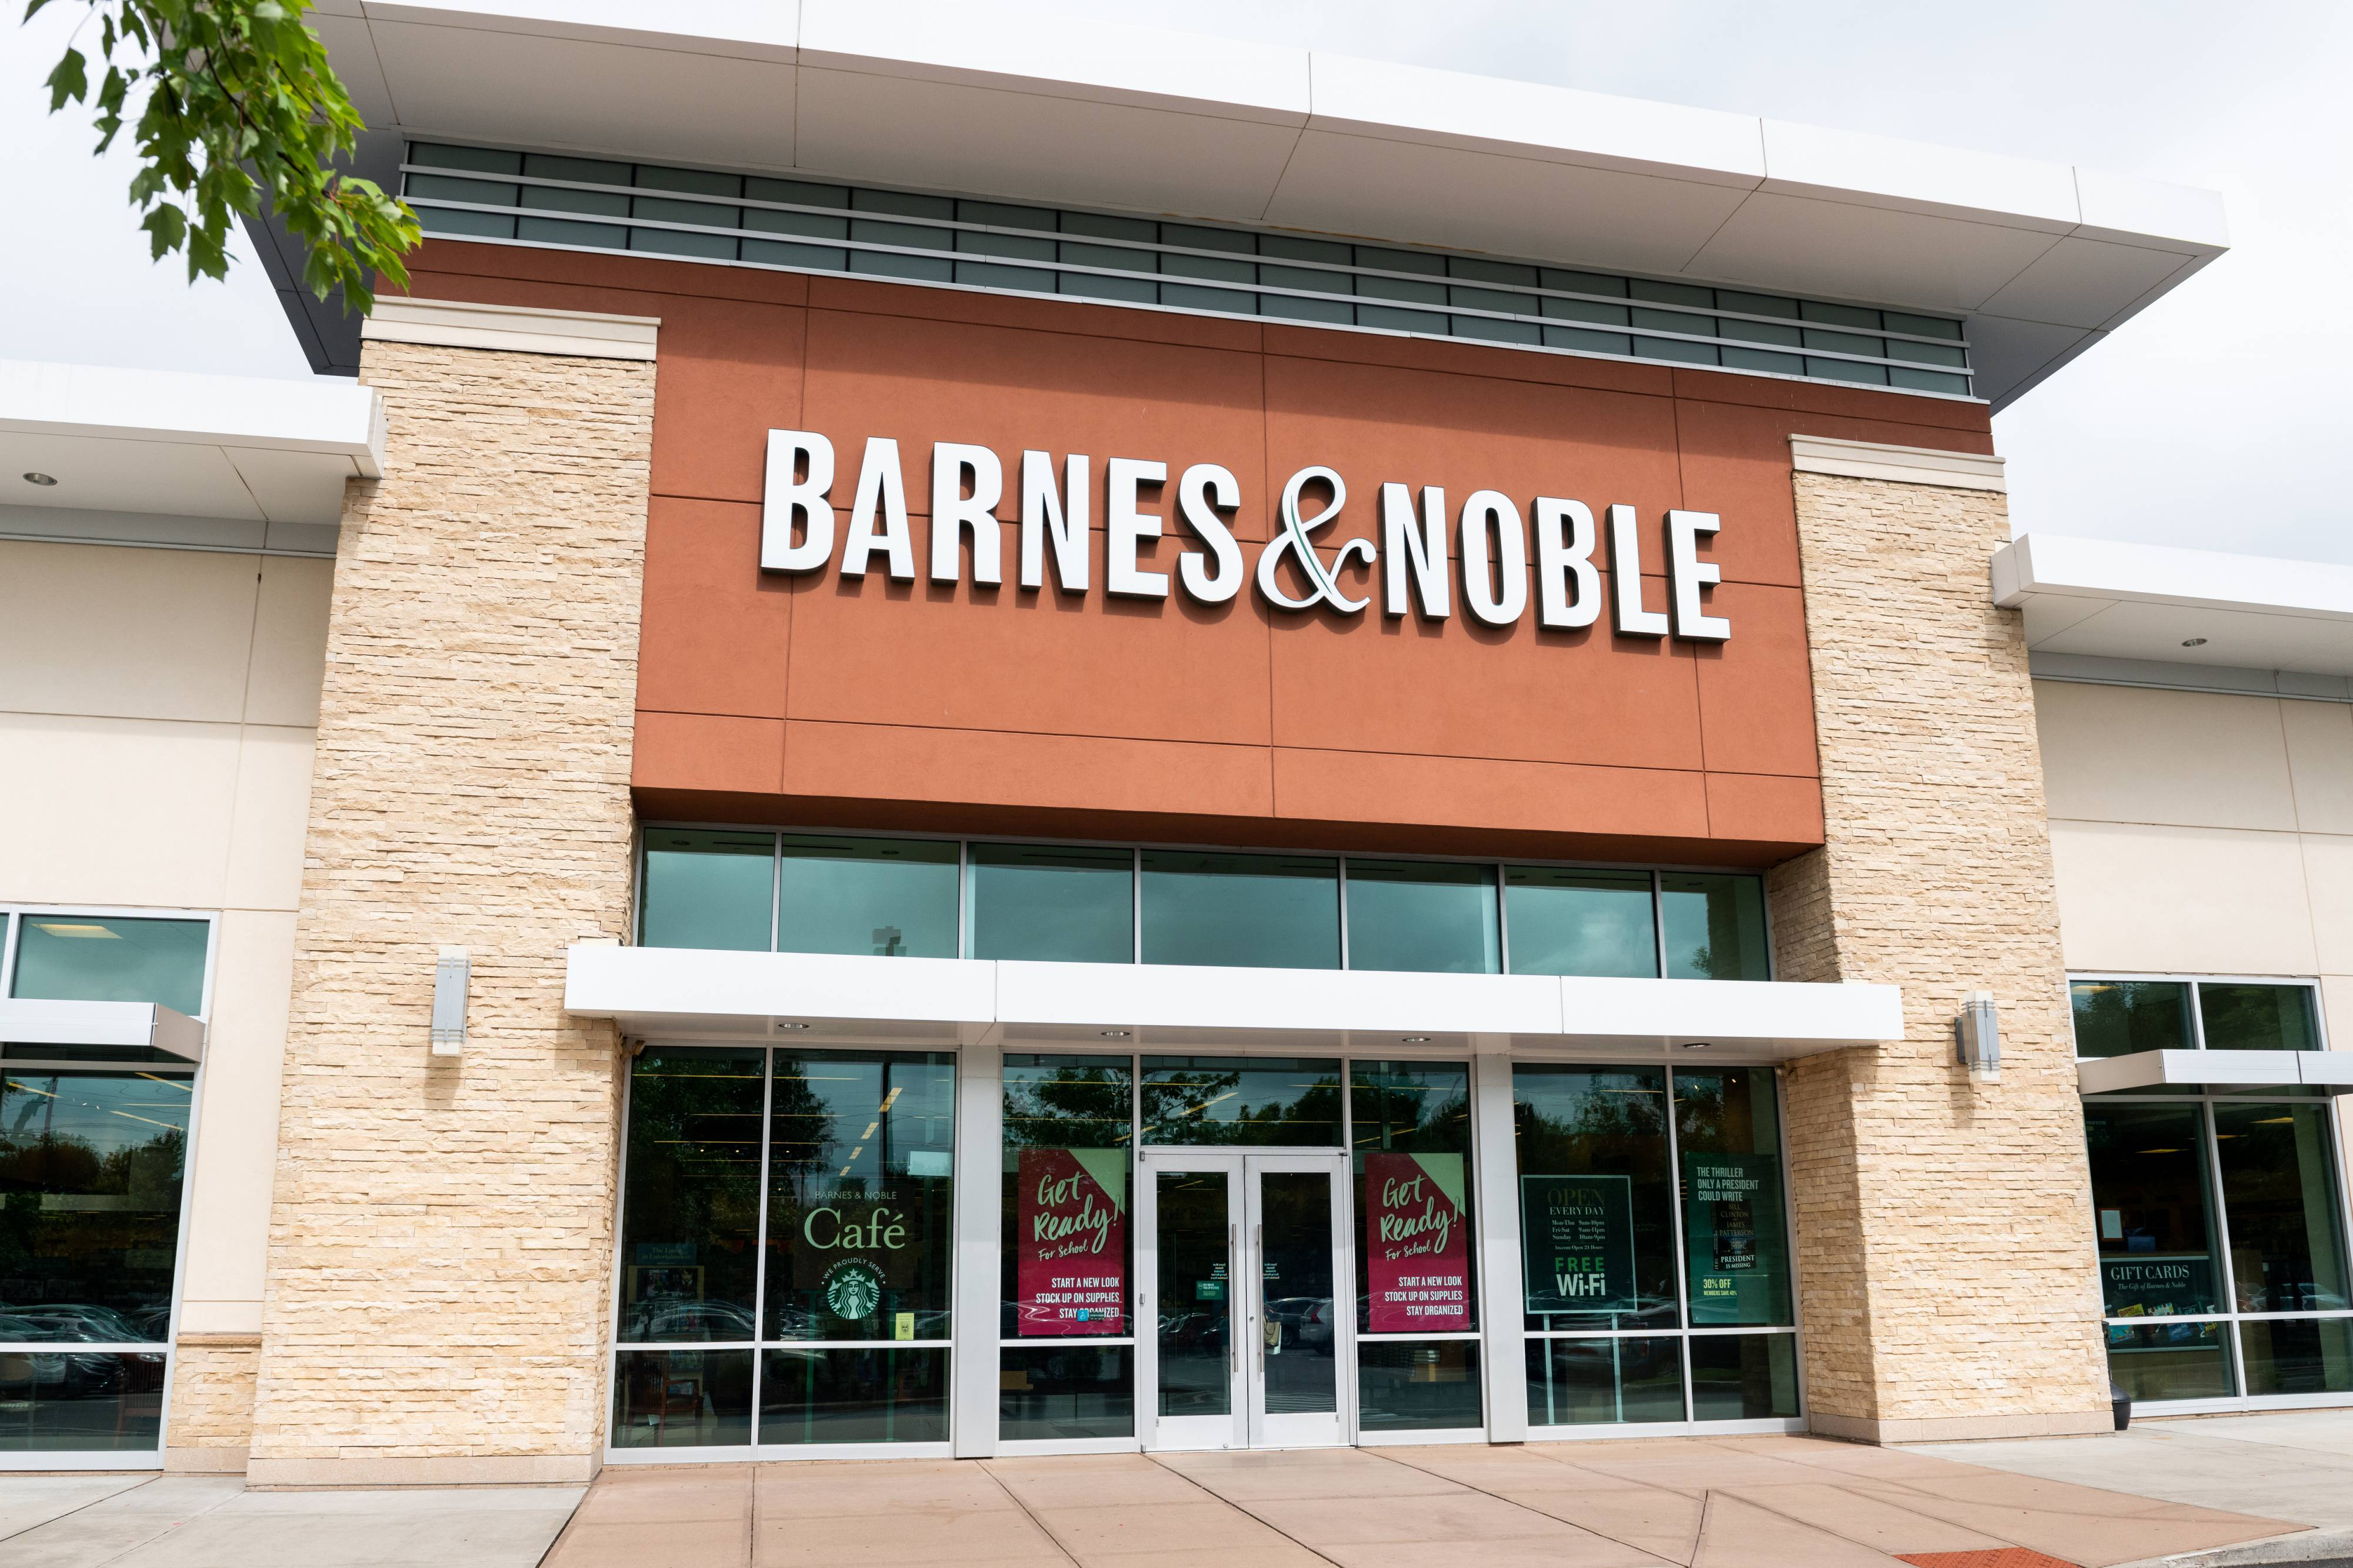 Barnes & Noble store in Princeton, New Jersey